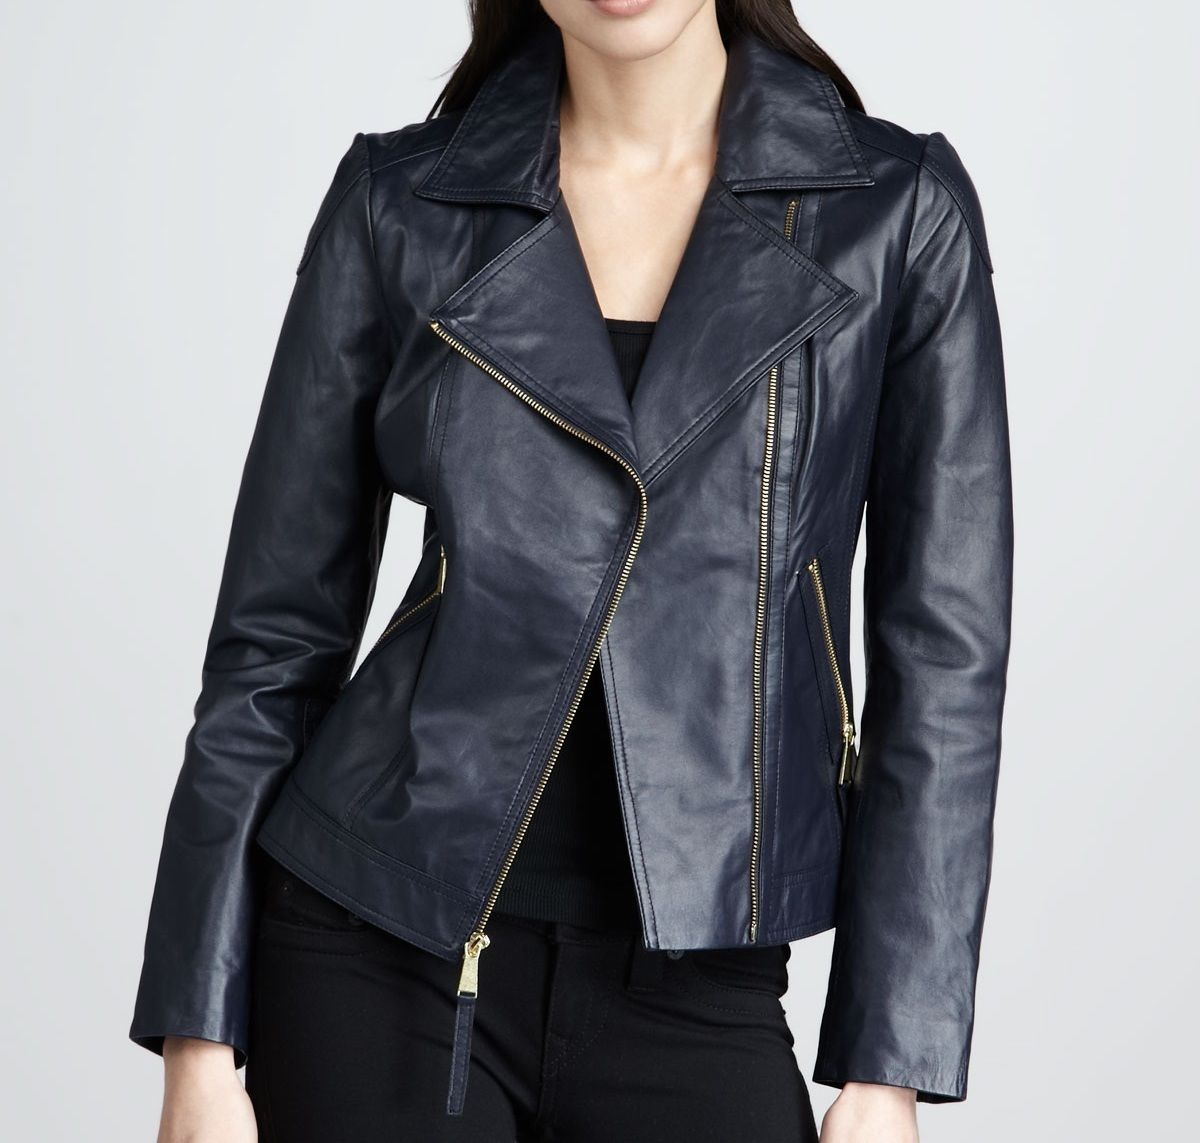 women's navy blue leather jacket